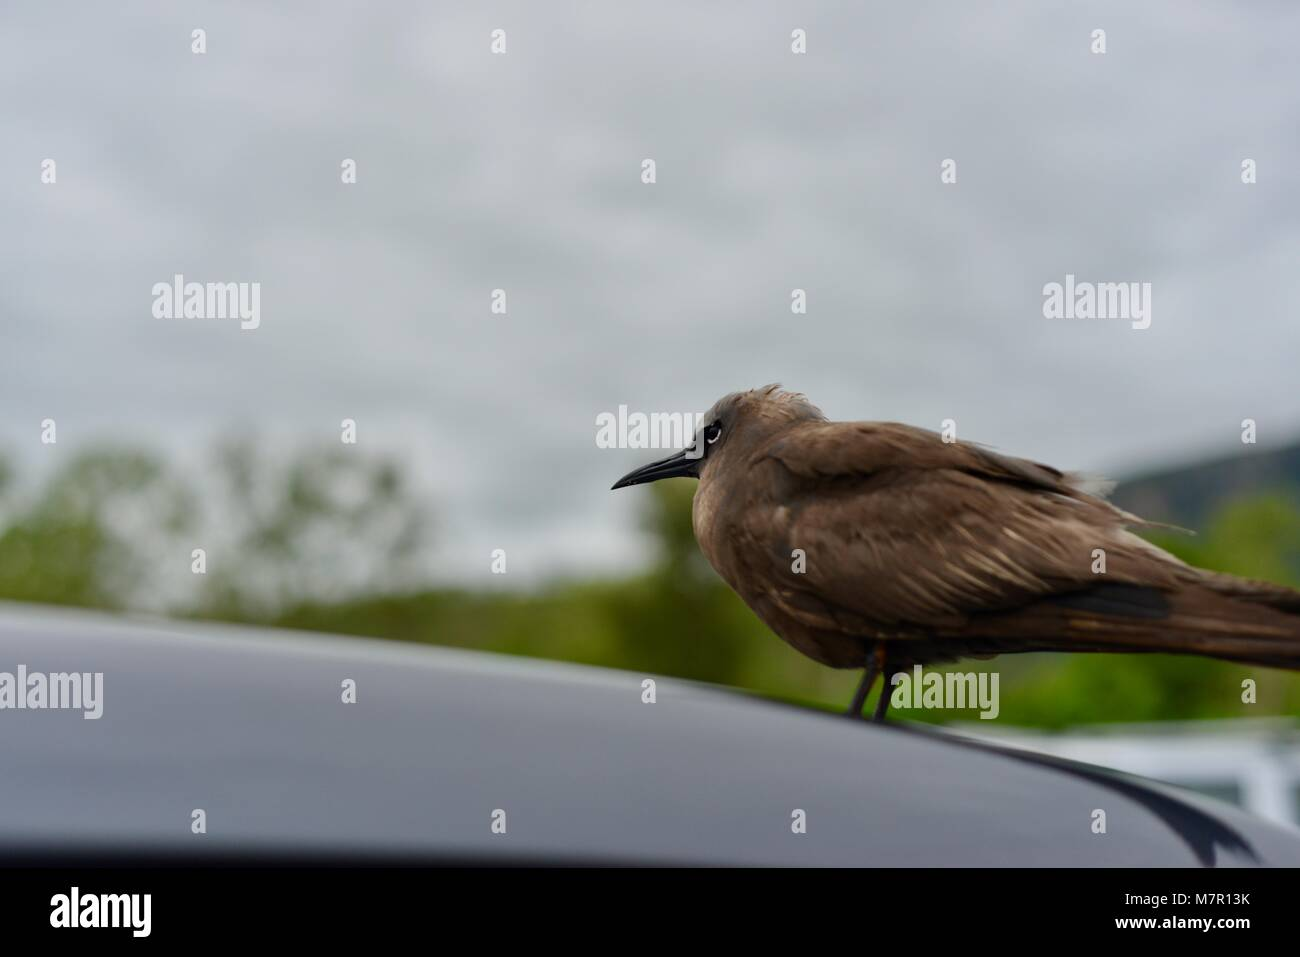 Common noddy or brown noddy Anous stolidus juvenile resting on a car away from the sea after rough weather and storms - Stock Image